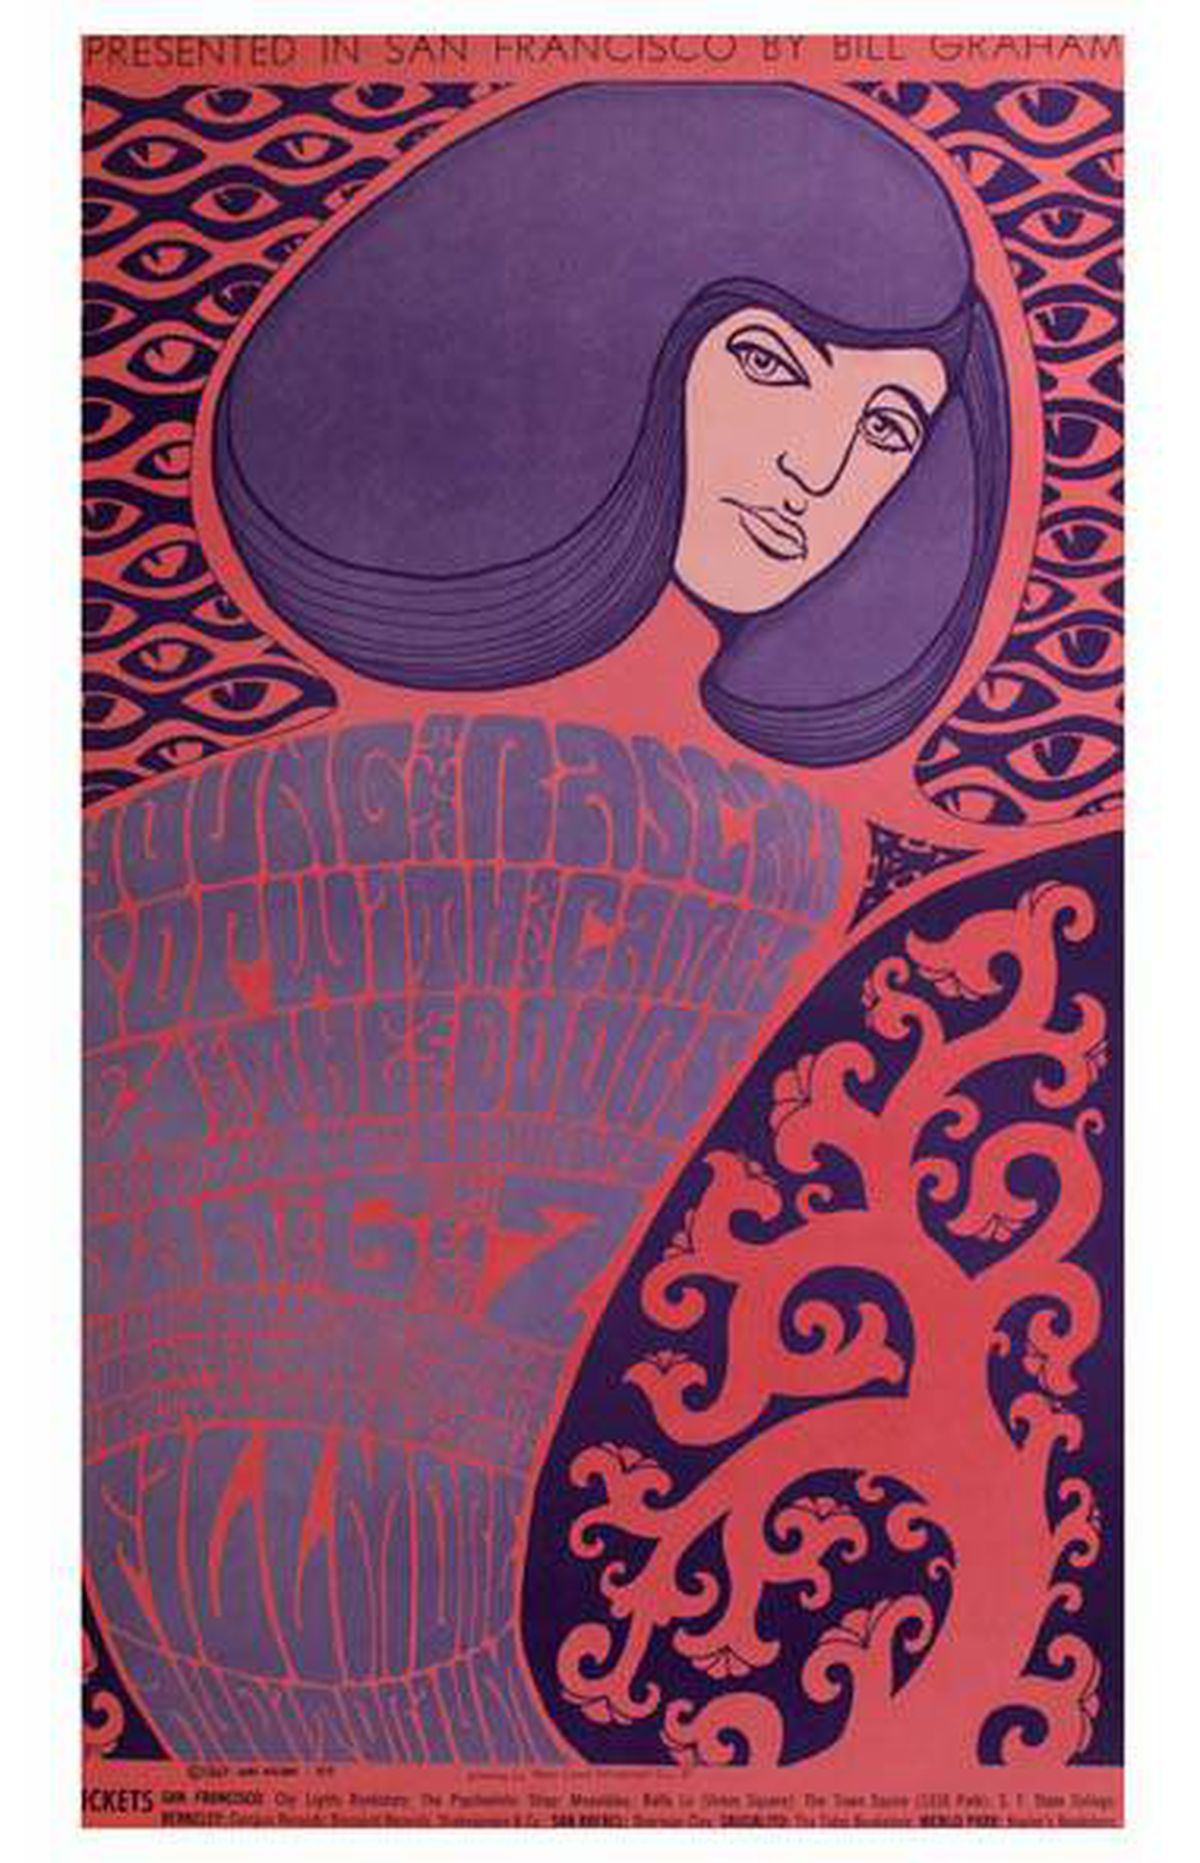 Poster for a Doors show at San Francisco's legendary Fillmore Auditorium January 6-8, 1967 by artist Wes Wilson. Part of a collection of rare and valuable posters gifted to the AGO, photographed on February 18, 2011.